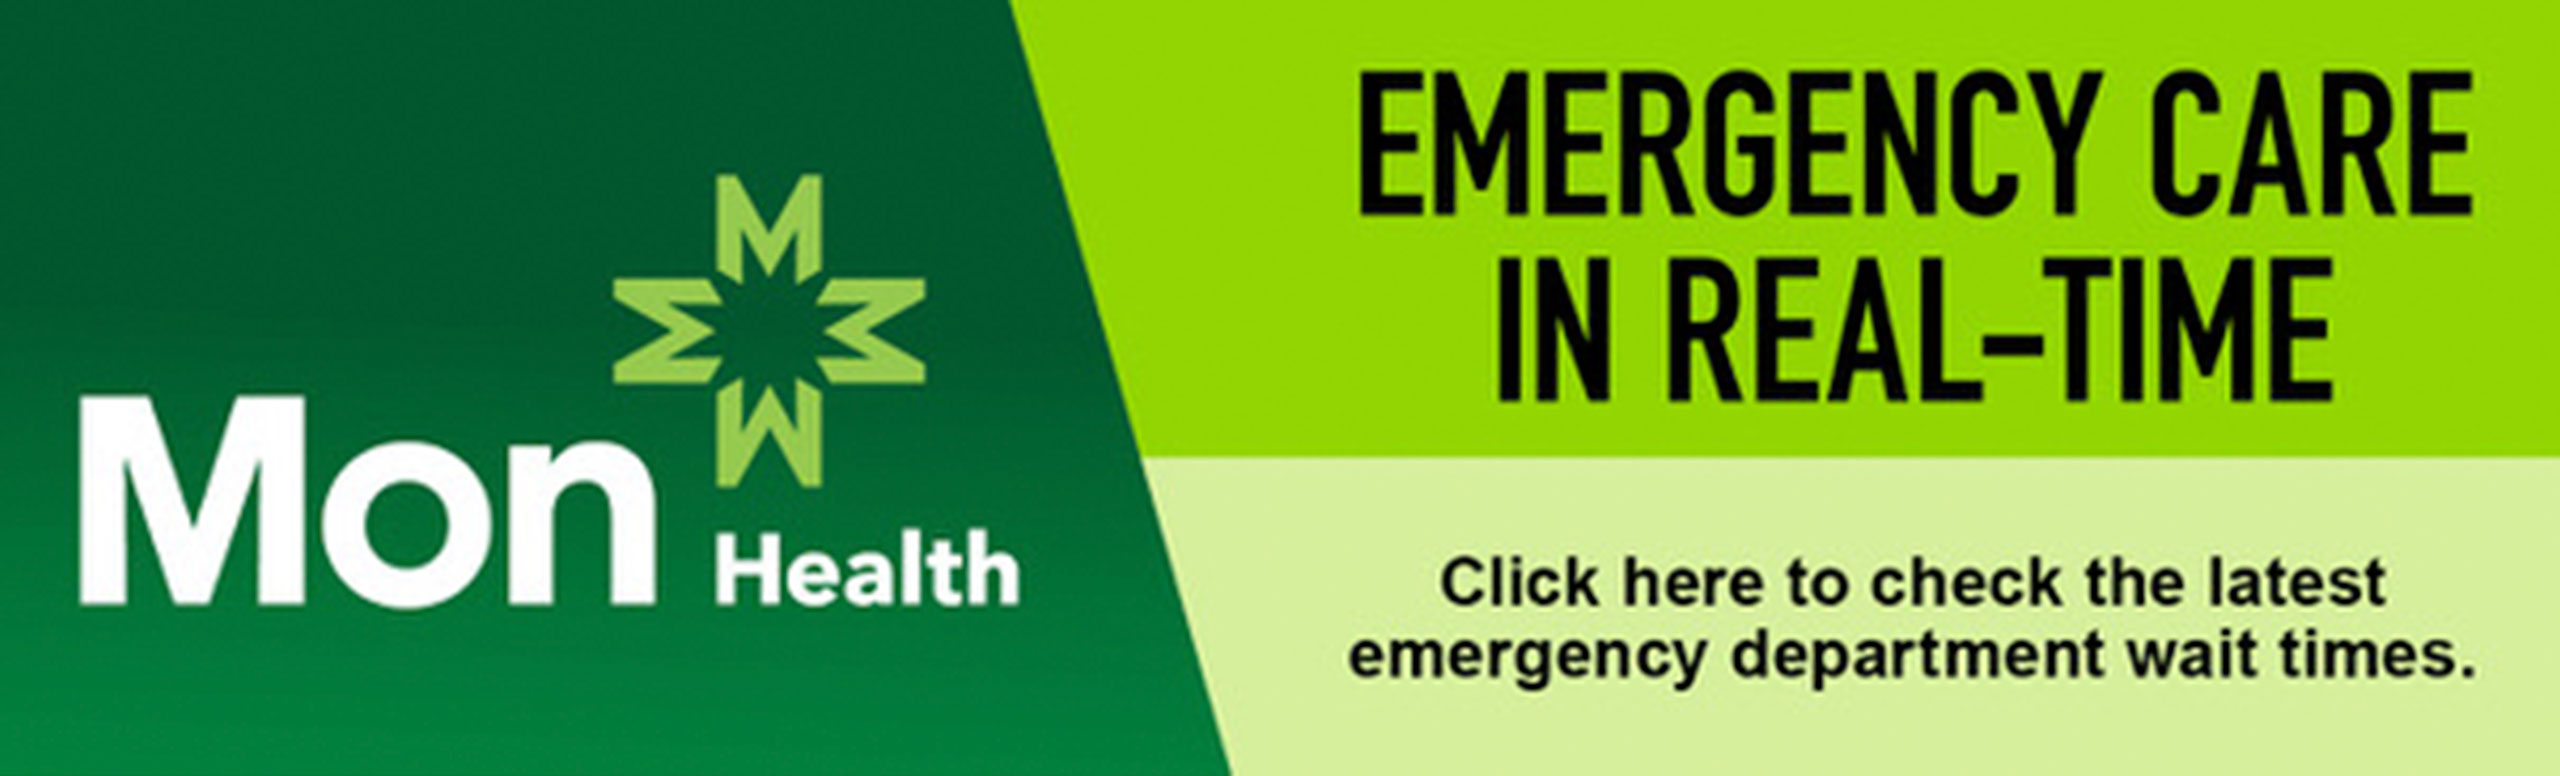 Emergency Care in Real-time Click here to check the latest emergency department wait times.